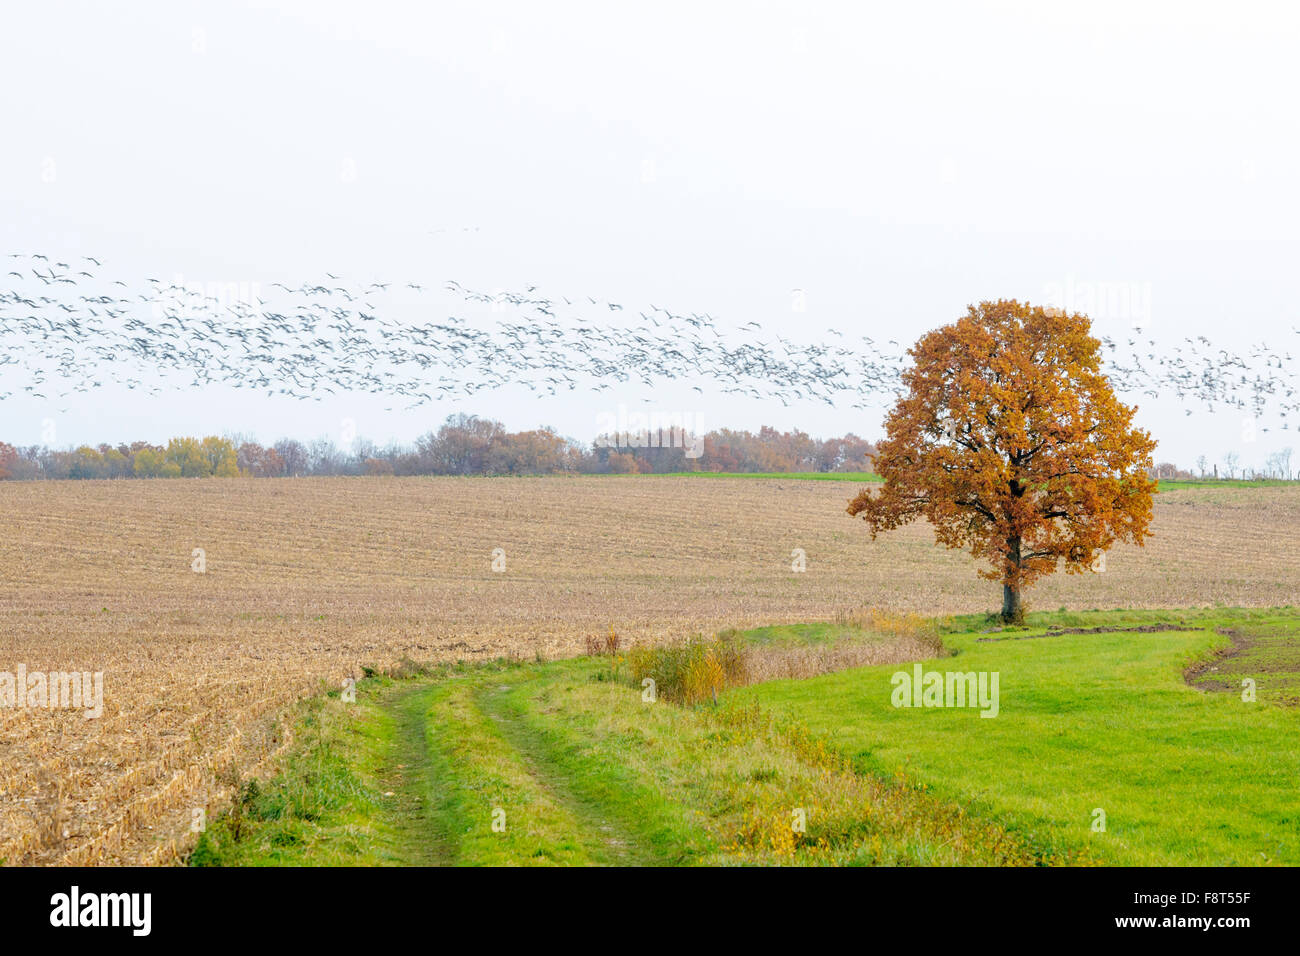 Common Crane (Grus grus) flock in flight with motion blur and autumn tree an field, Lac du Der, Haute Marne, France. - Stock Image